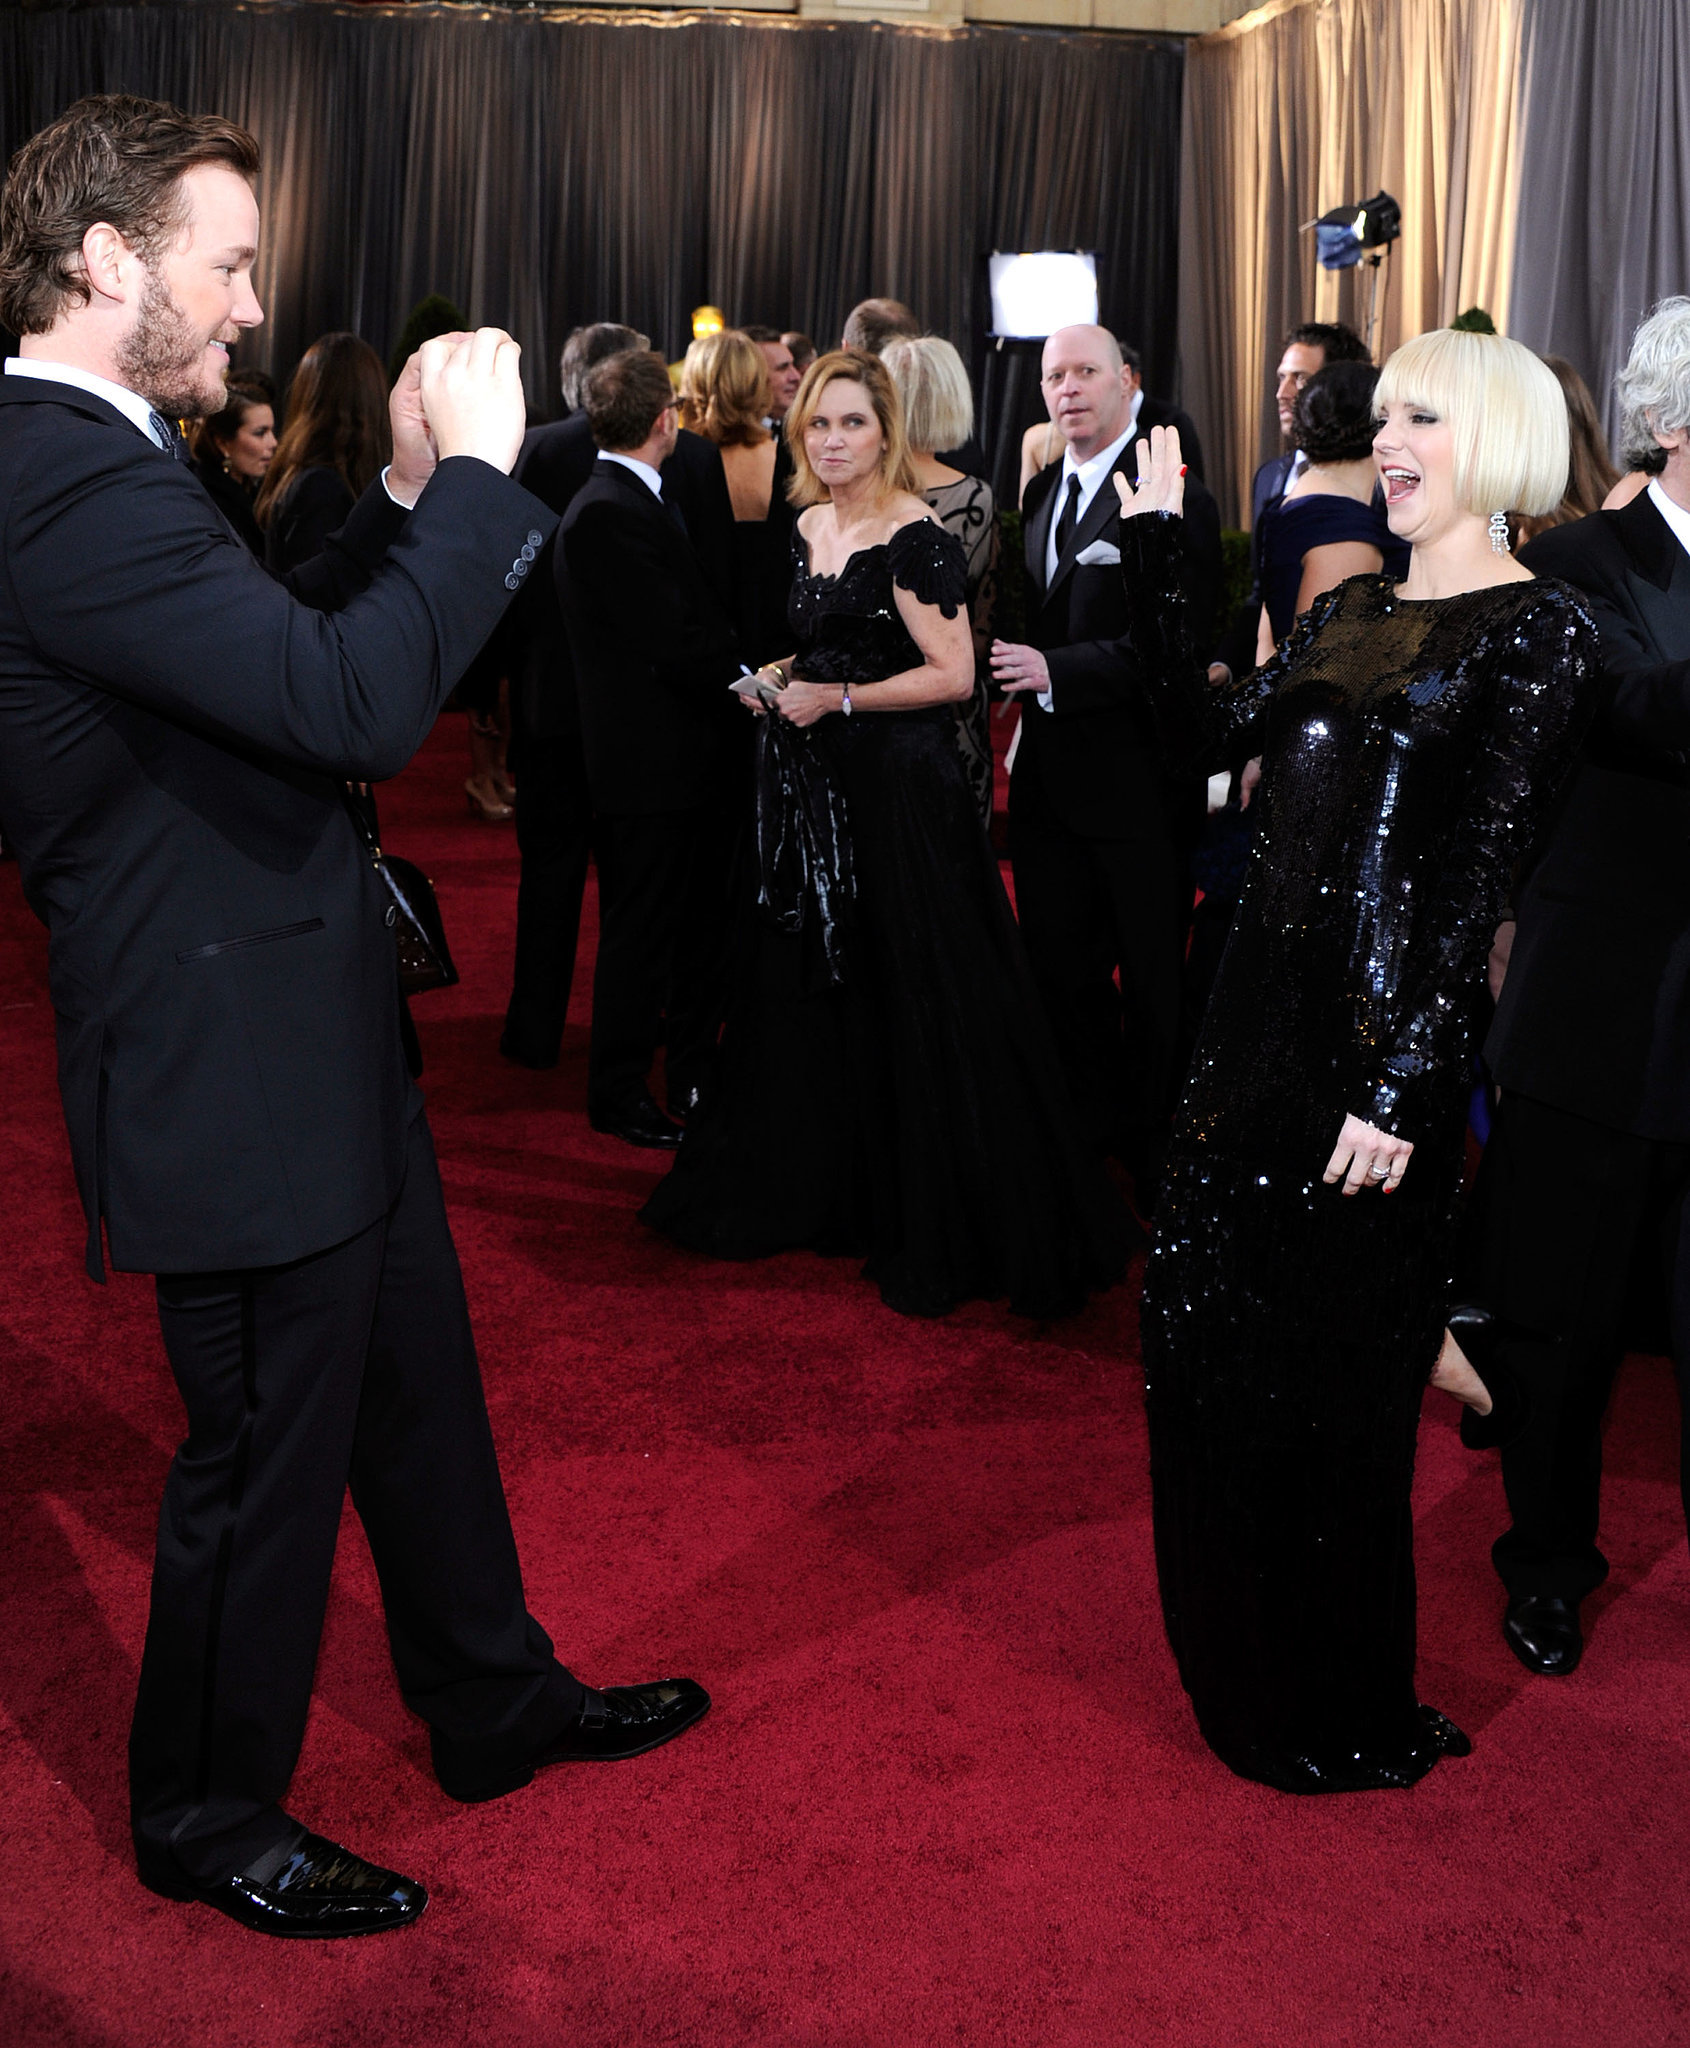 In 2012, Chris snapped pictures of Anna on the red carpet at the Oscars.